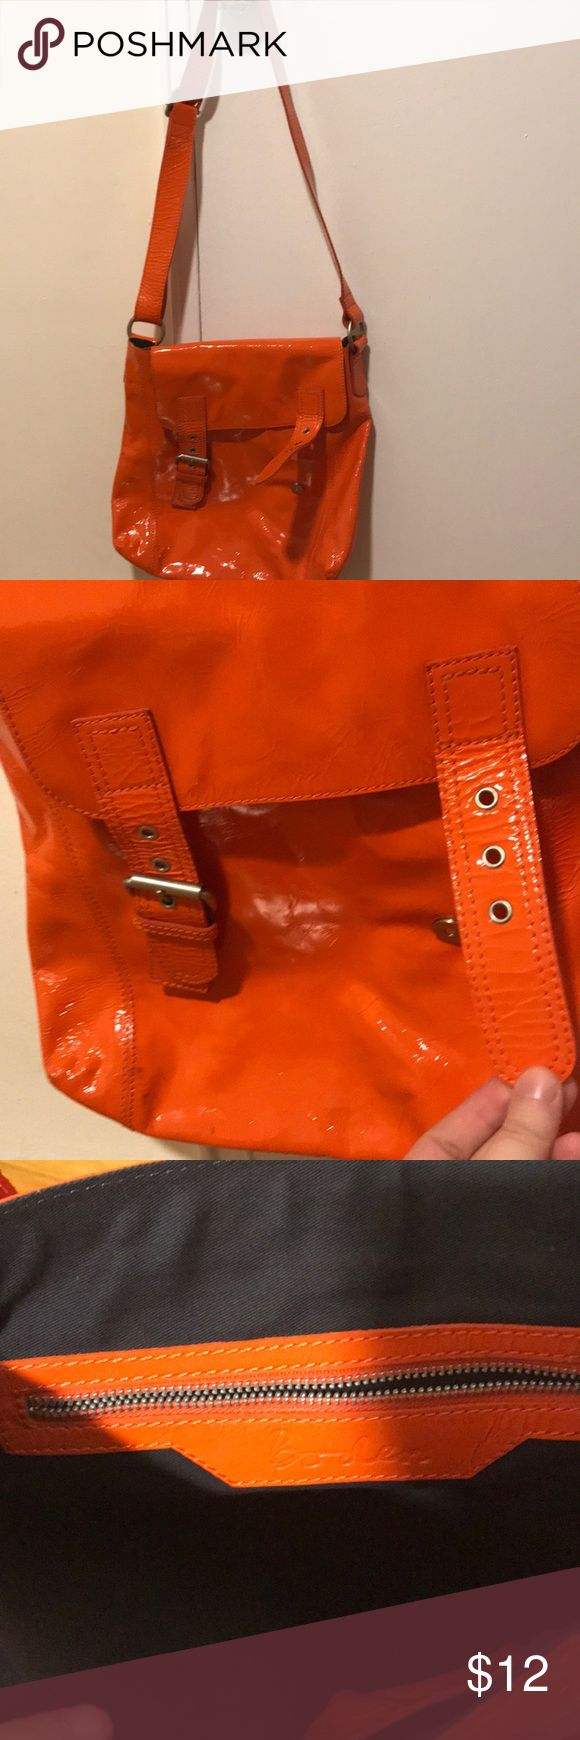 Boden Patent leather orange bag AS IS Beautiful bag! However major flaw - connector for magnetic closure on right side is missing. Can remove other side for symmetrical look, or wear without. Otherwise mostly cosmetic flaws, many small blemishes throughout. Exterior is extremely clean. Vibrant orange color! Boden Bags Crossbody Bags